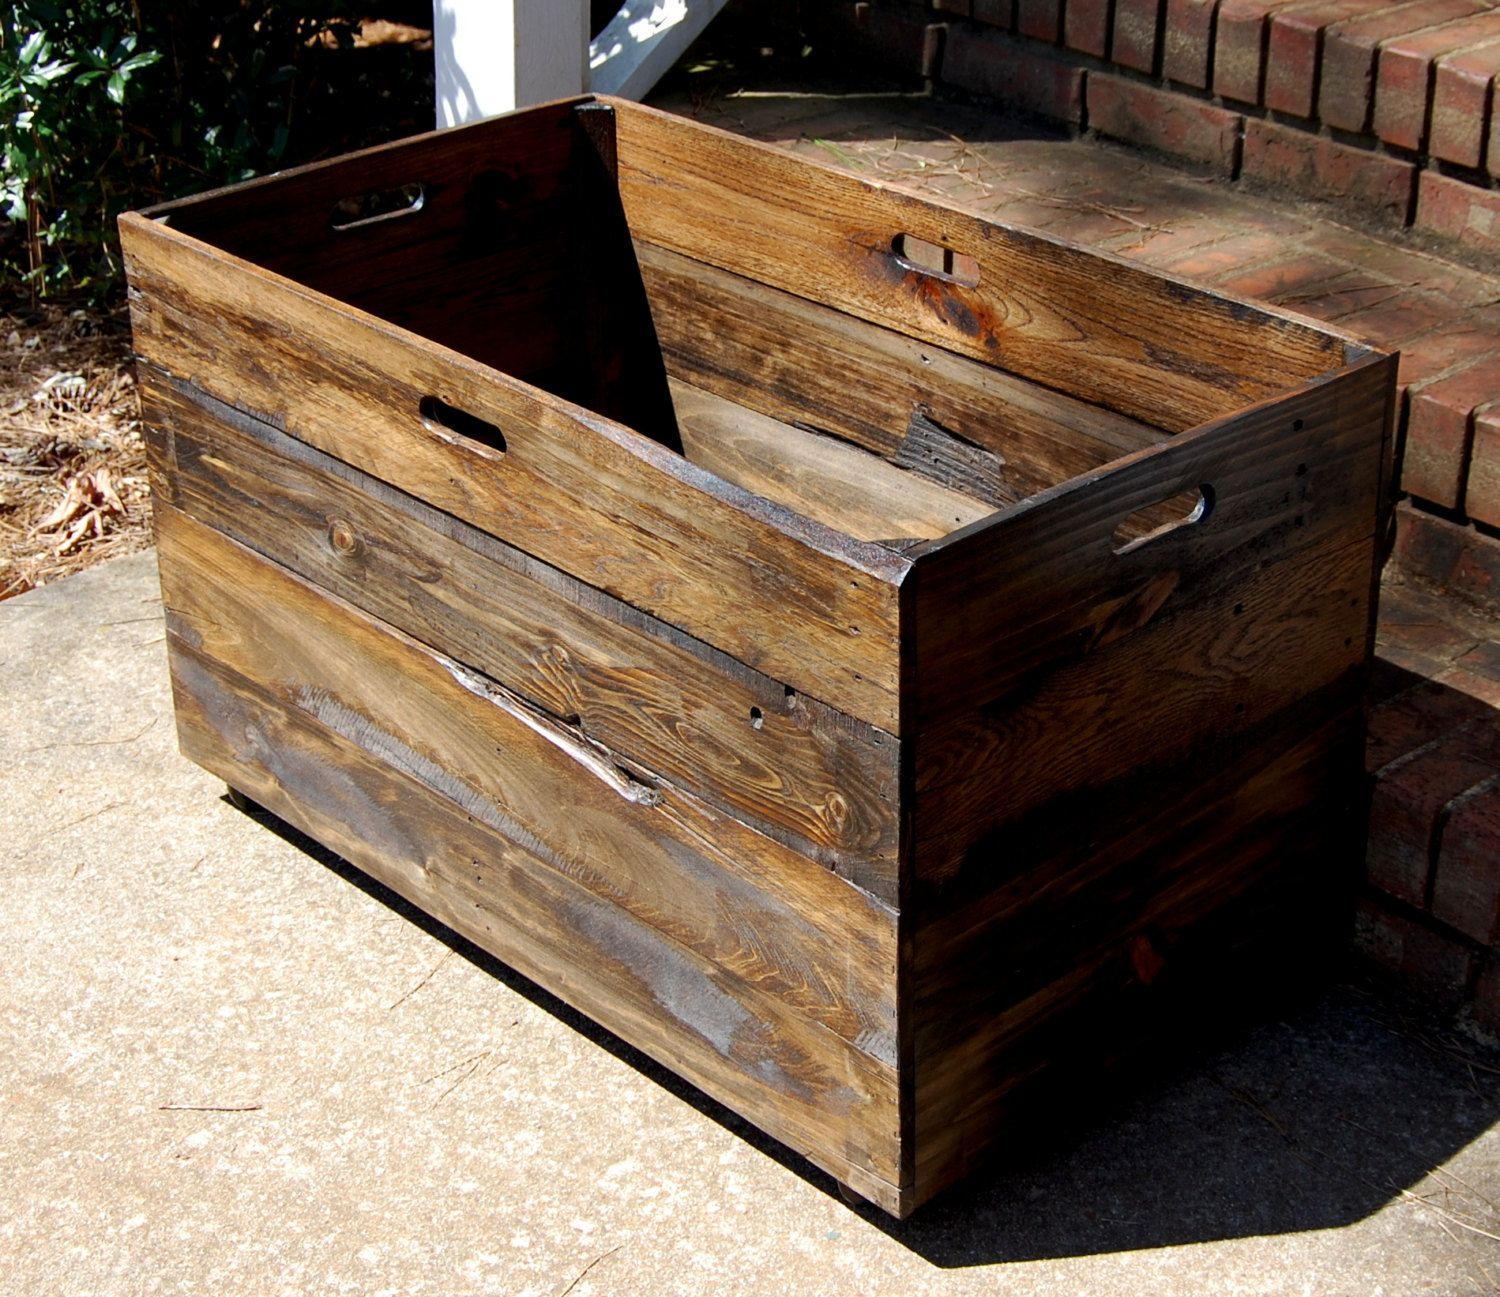 Popular Items For Large Wood Crate On Etsy Wooden Toy Chest Wooden Crate Wooden Storage Boxes